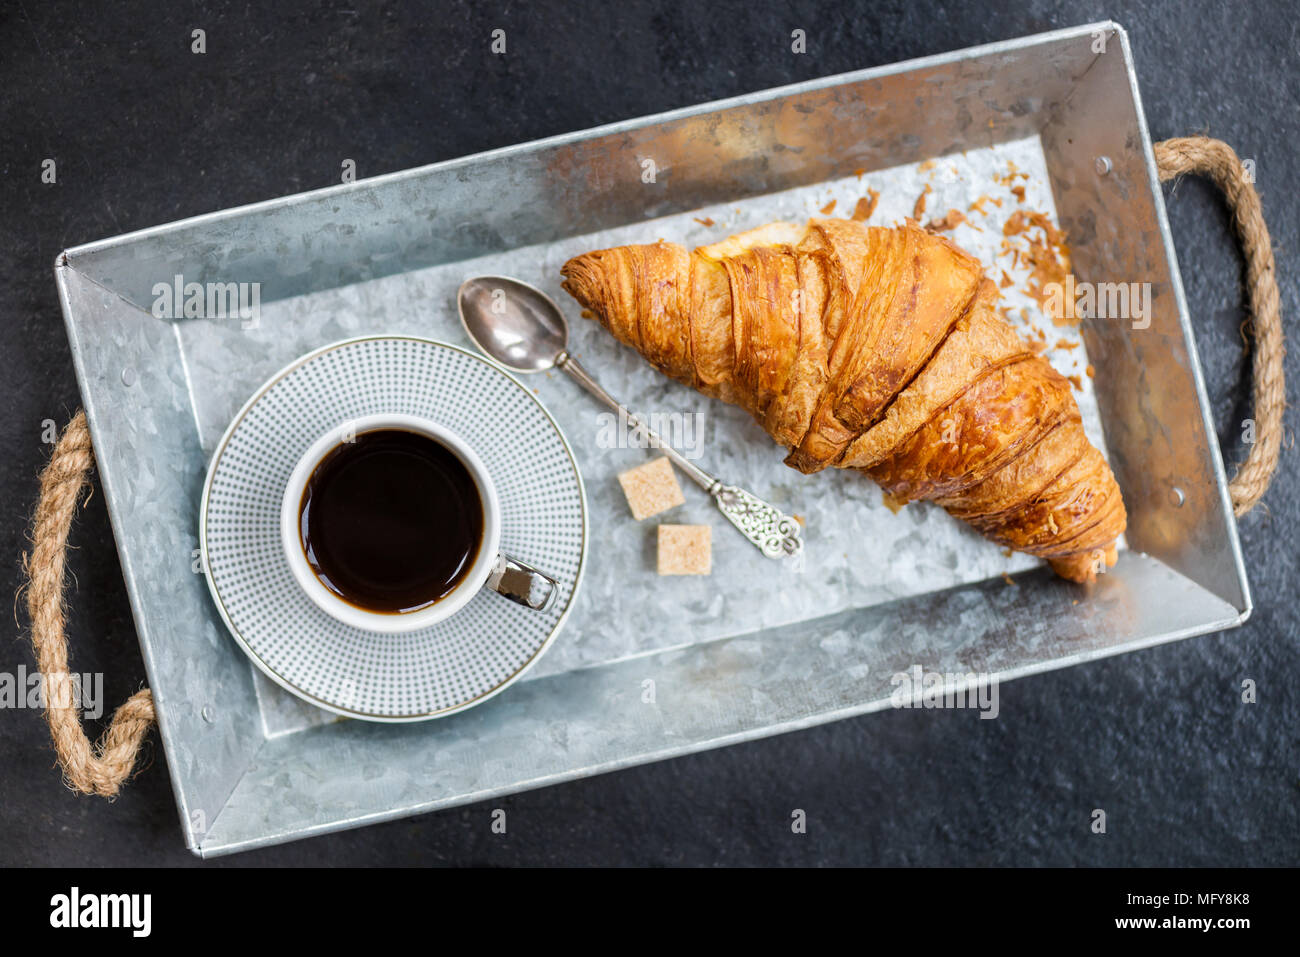 Light Breakfast from fresh Croissant and Cup of Coffee on the grey tray - Stock Image